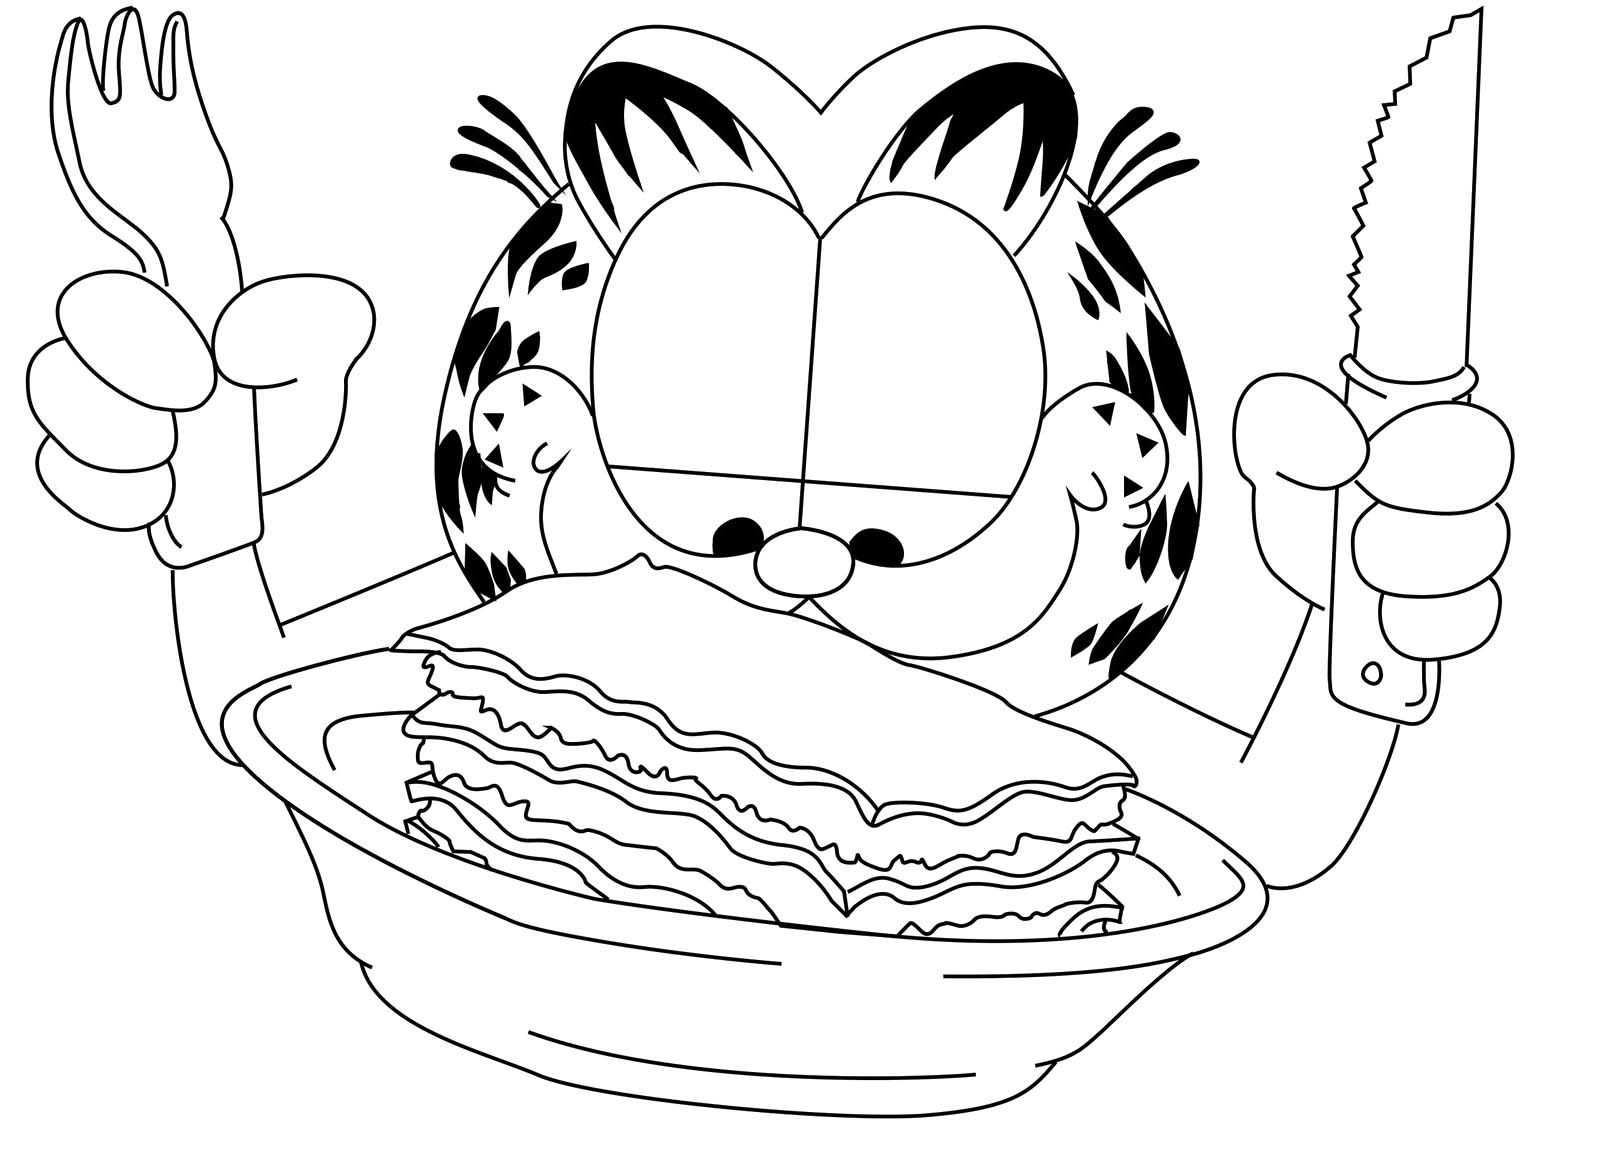 Free printable coloring pages garfield - Garfield Wanted To Cut The Cake Using A Knife And Fork Coloring Page